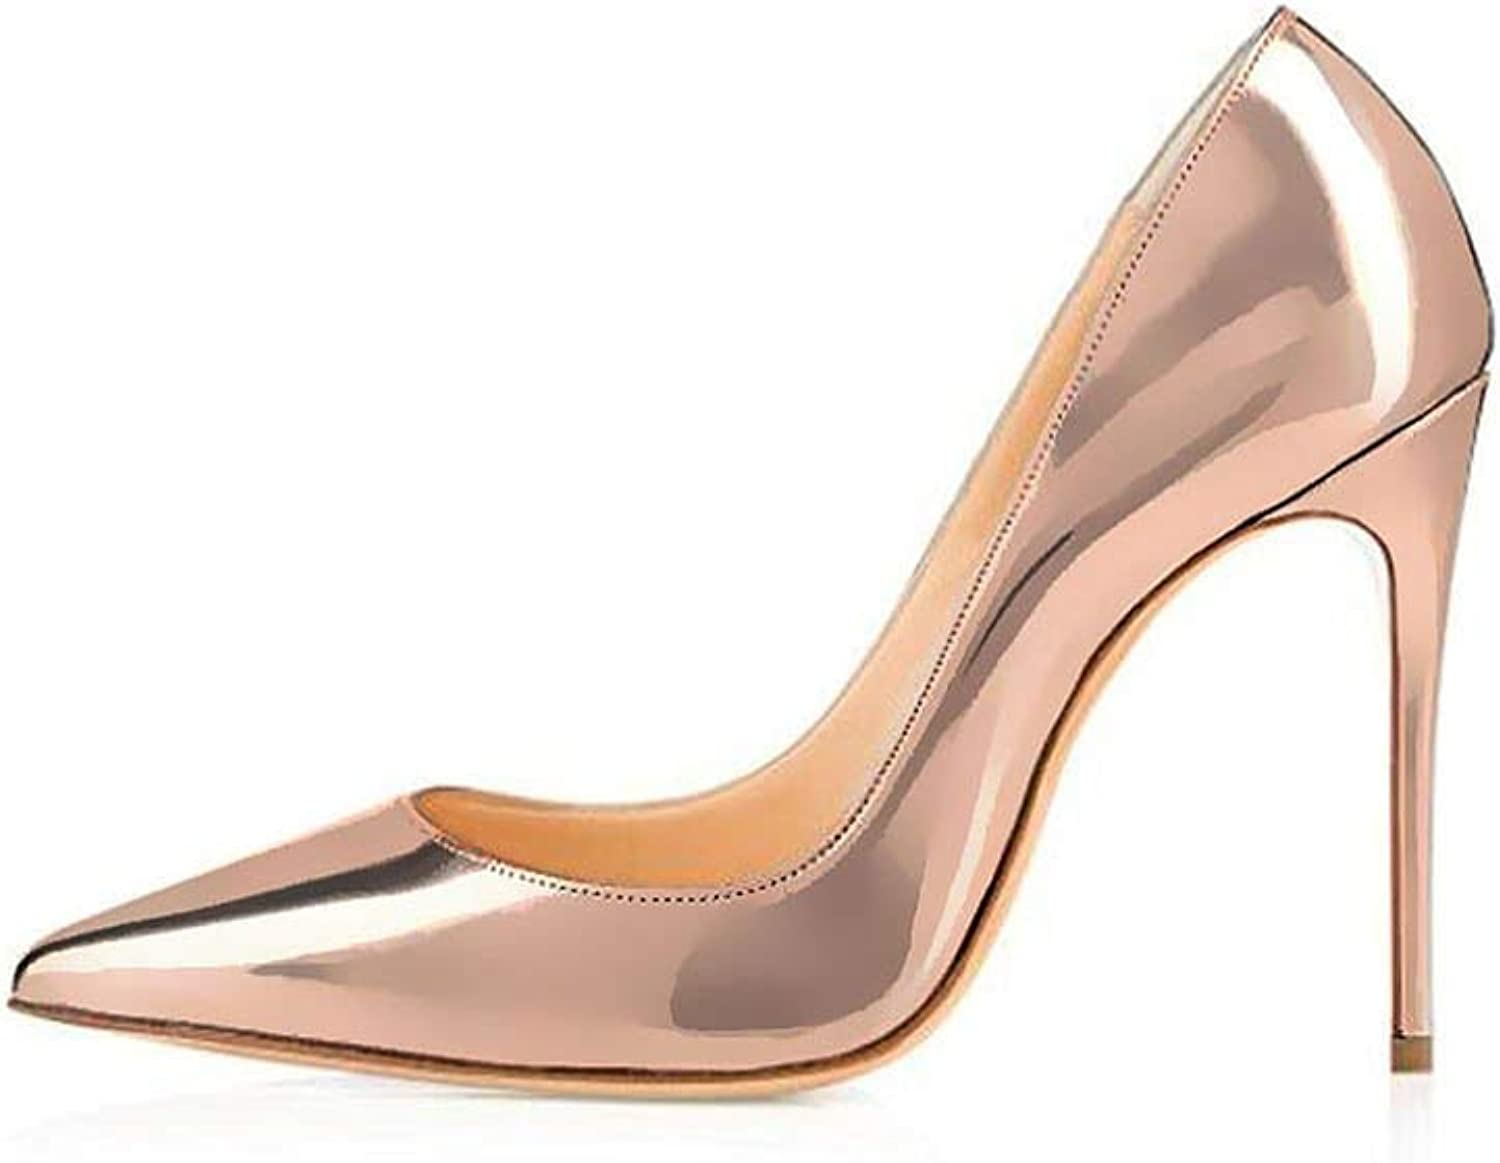 Women High Heels shoes pink gold Pointed Toe High Heeled Party Prom Wedding Pointy Toe Sexy Pumps